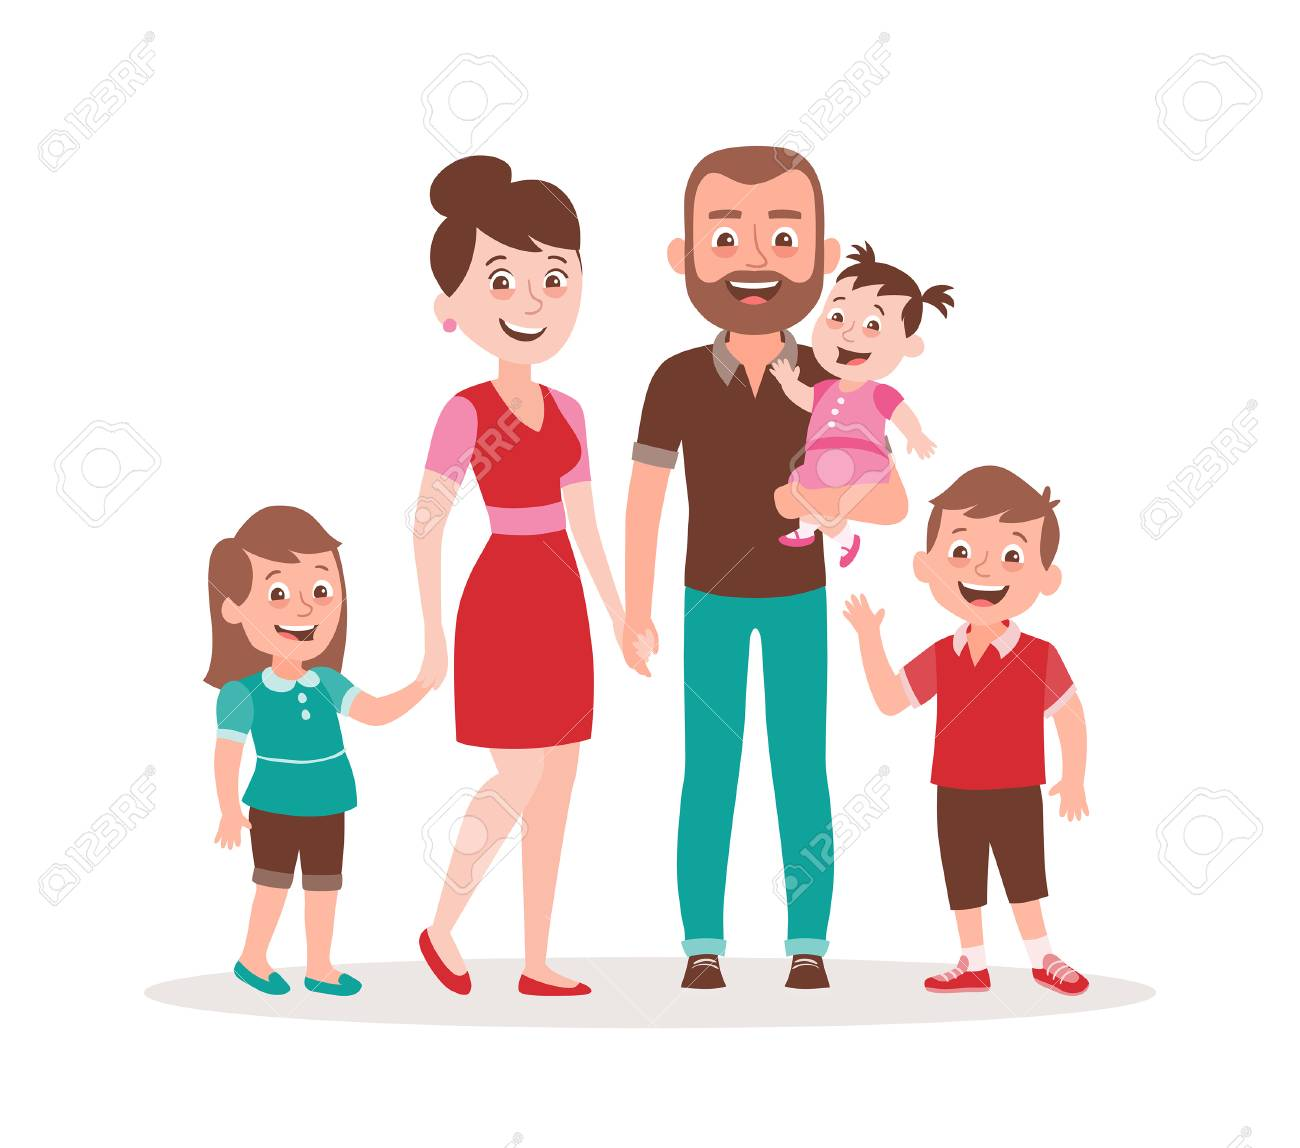 Happy Family Portrait Father Mother Daughter Son And A Baby Royalty Free Cliparts Vectors And Stock Illustration Image 121113812